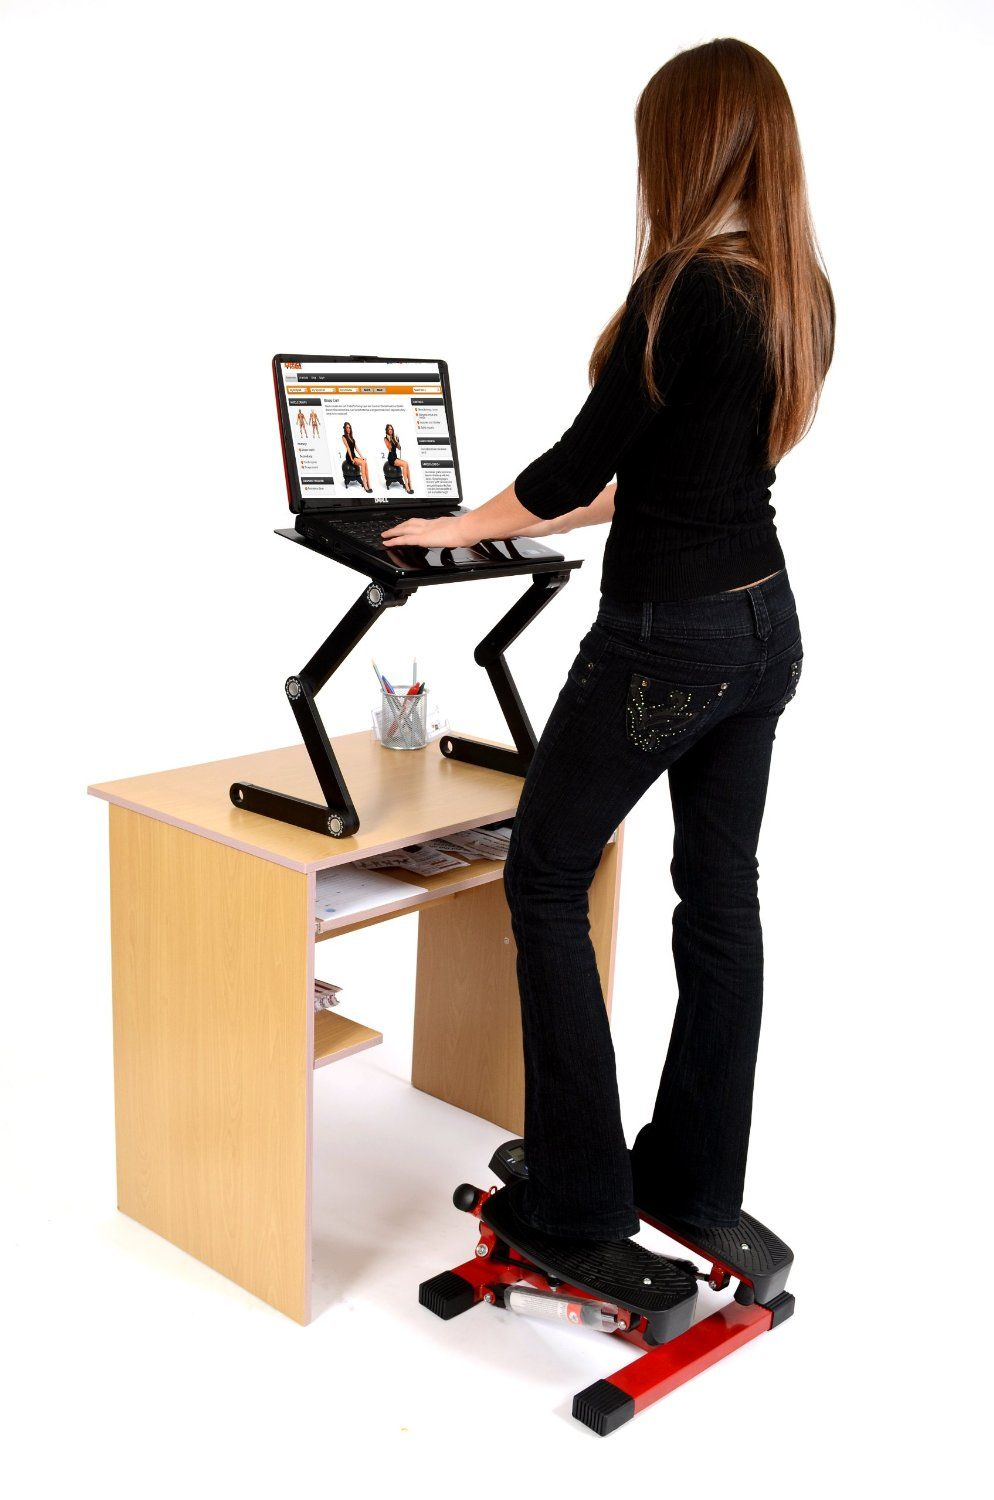 office fitness twist stepper with bungee cords blackred mini twist stepper fitness workout machine